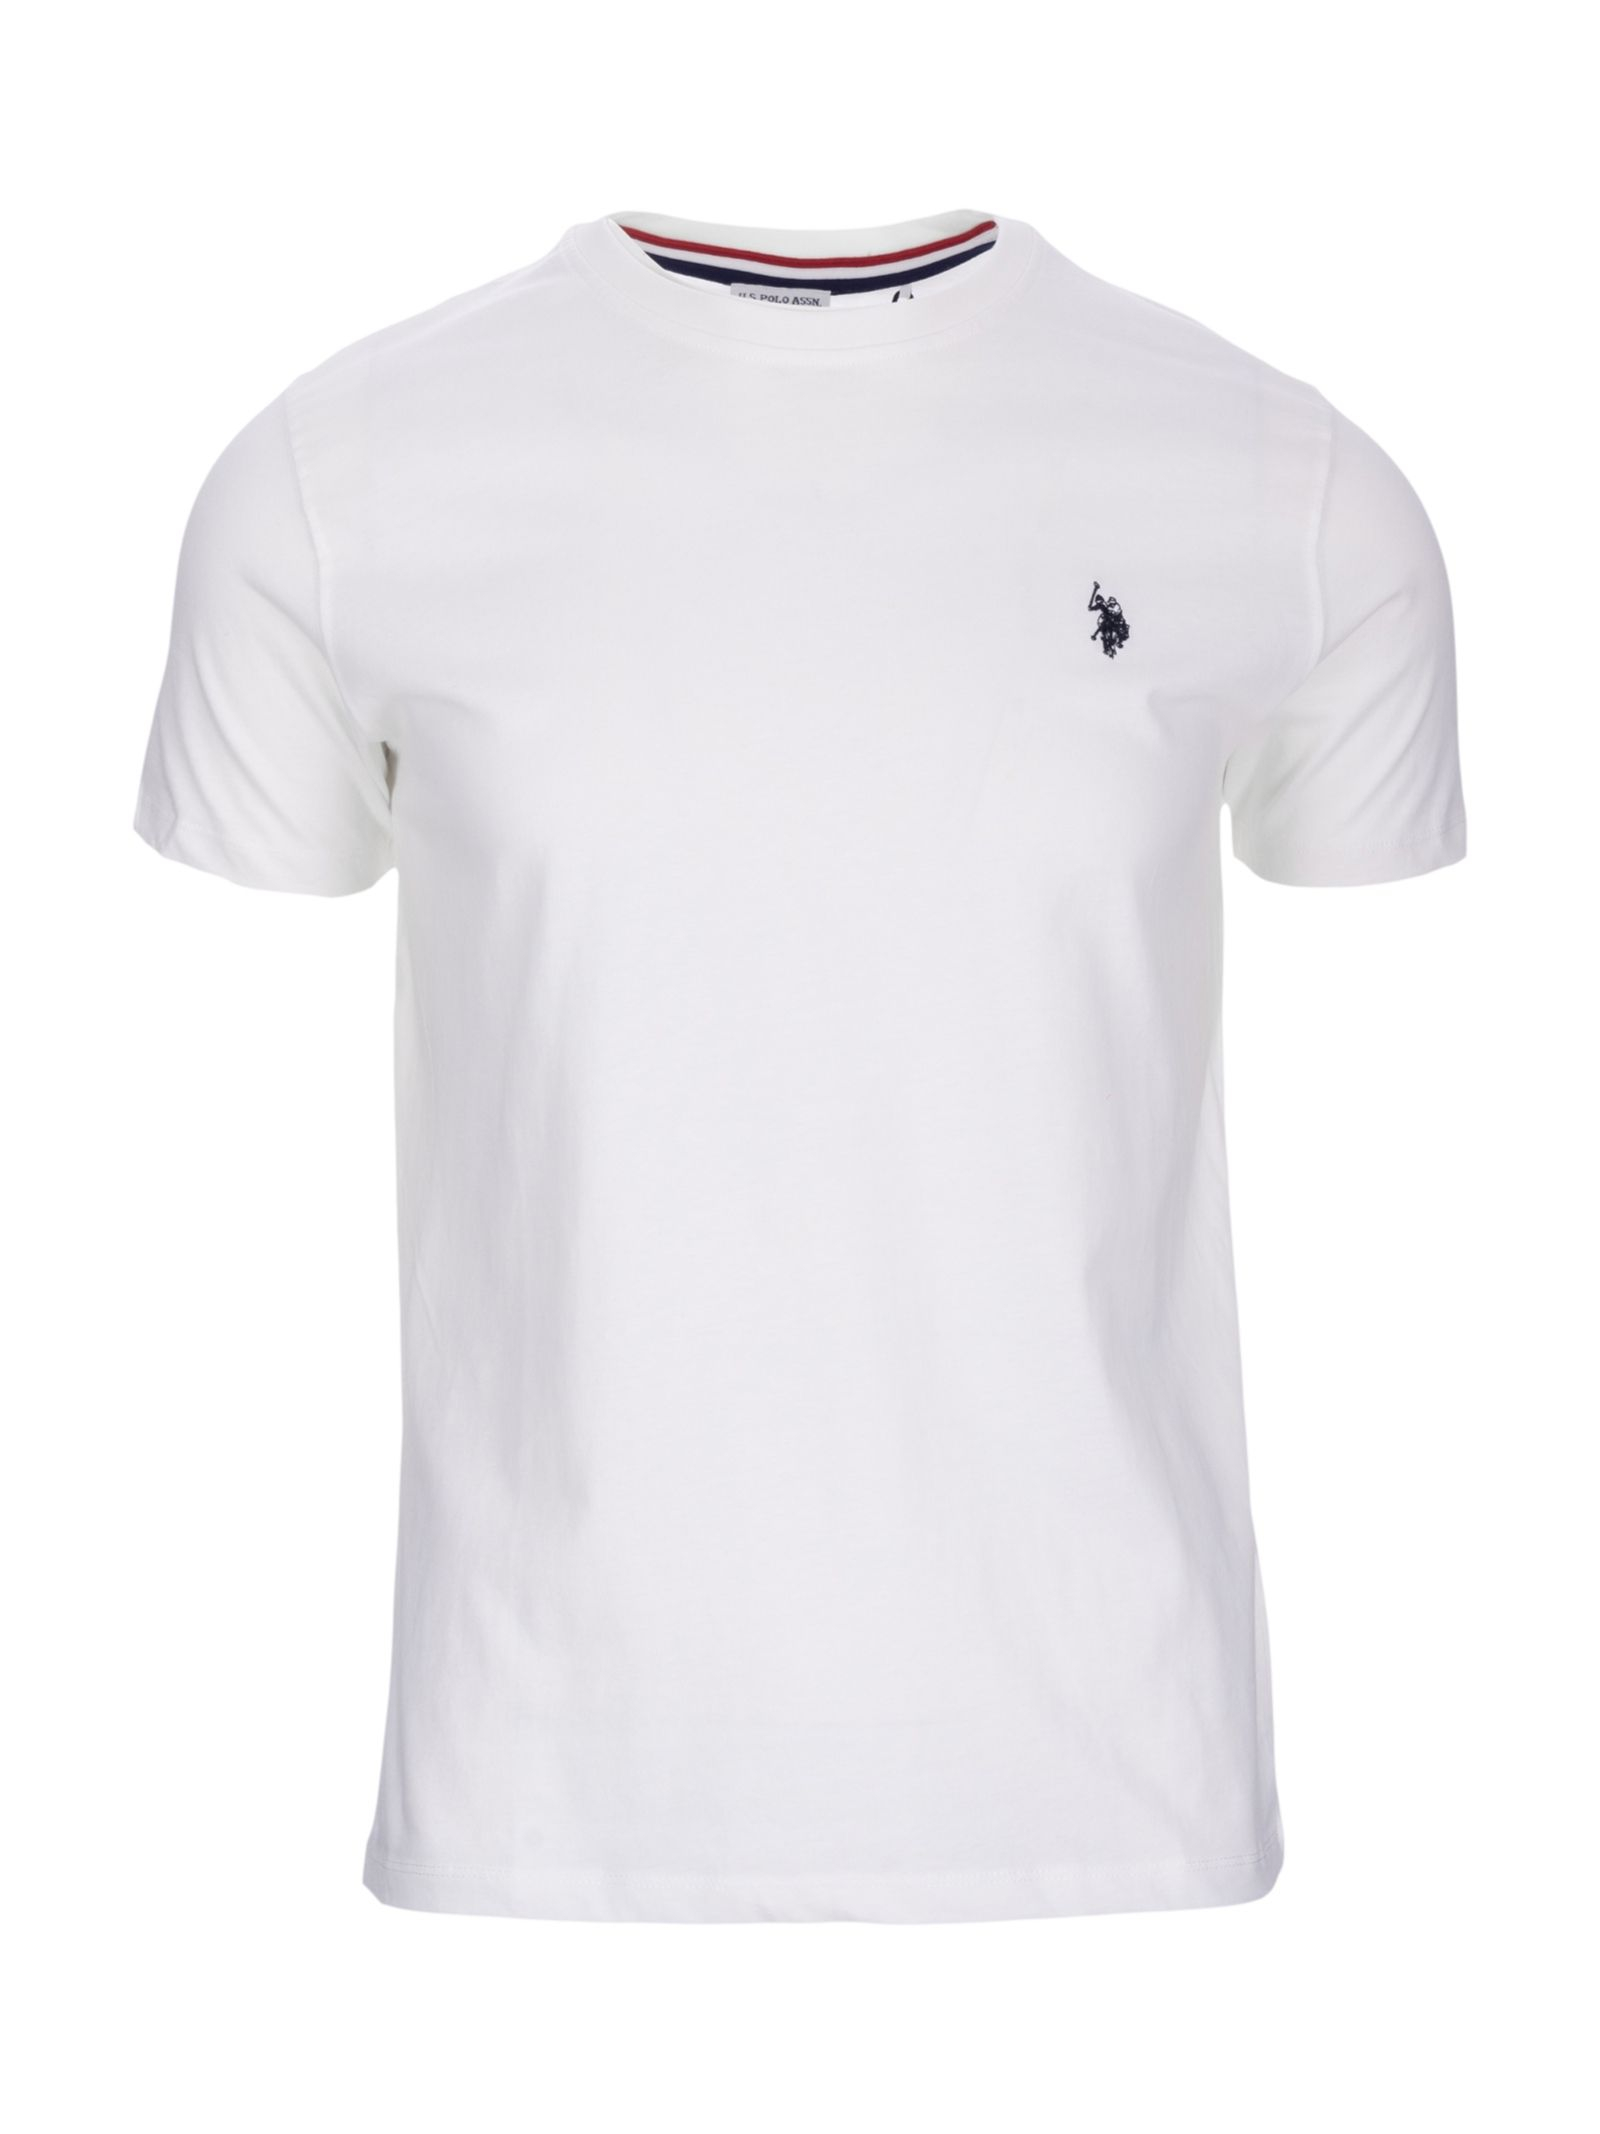 U.S Polo Assn T- shirt 59940 49351